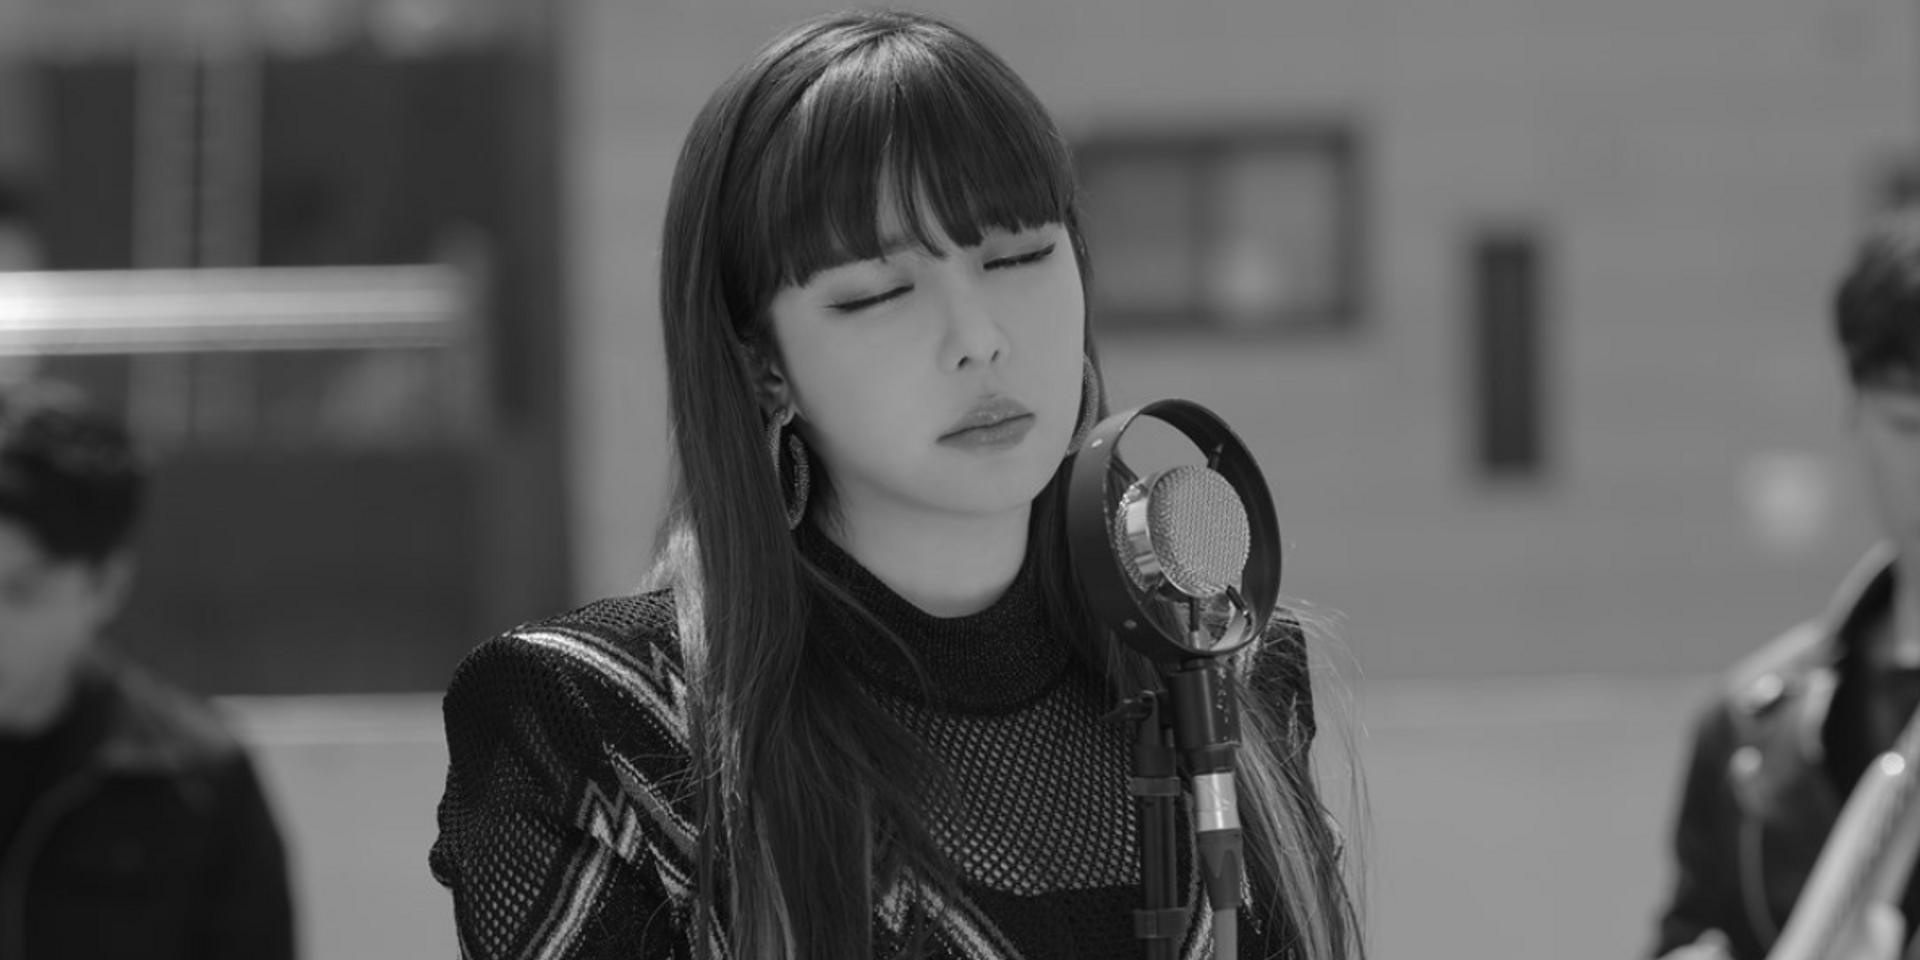 Park Bom to make comeback with new single 'DoReMiFaSol' this month